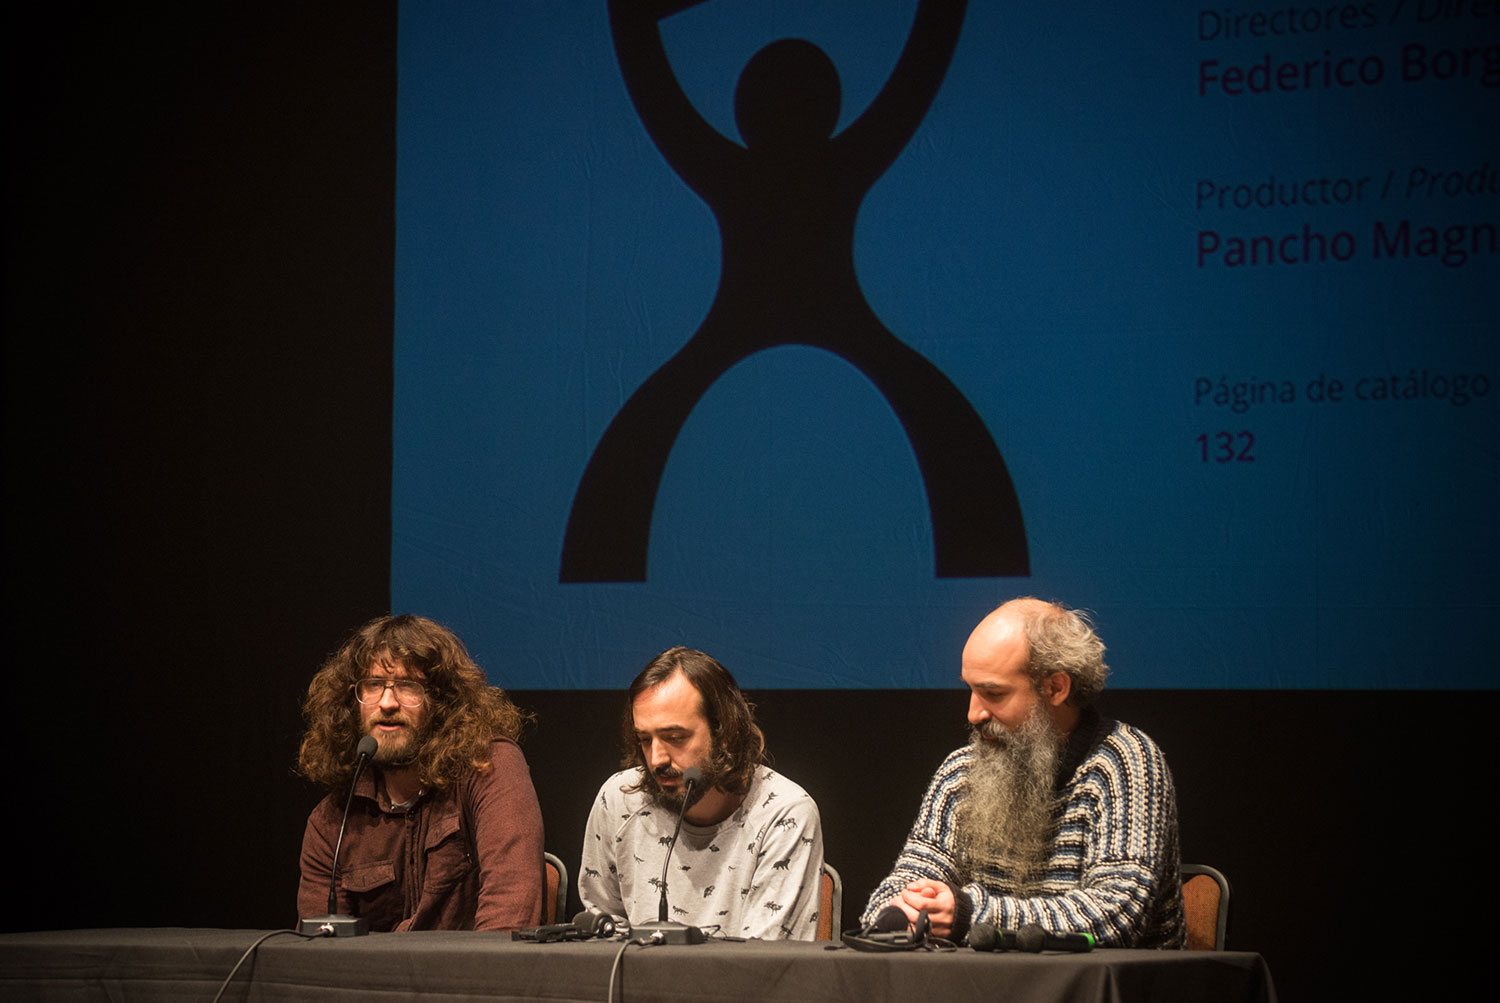 The creative team behind 'El campeón del mundo (The Champion of the World)' pitching at DocMontevideo. Photo: Andrea Lopez. Cortesy of DocMontevideo